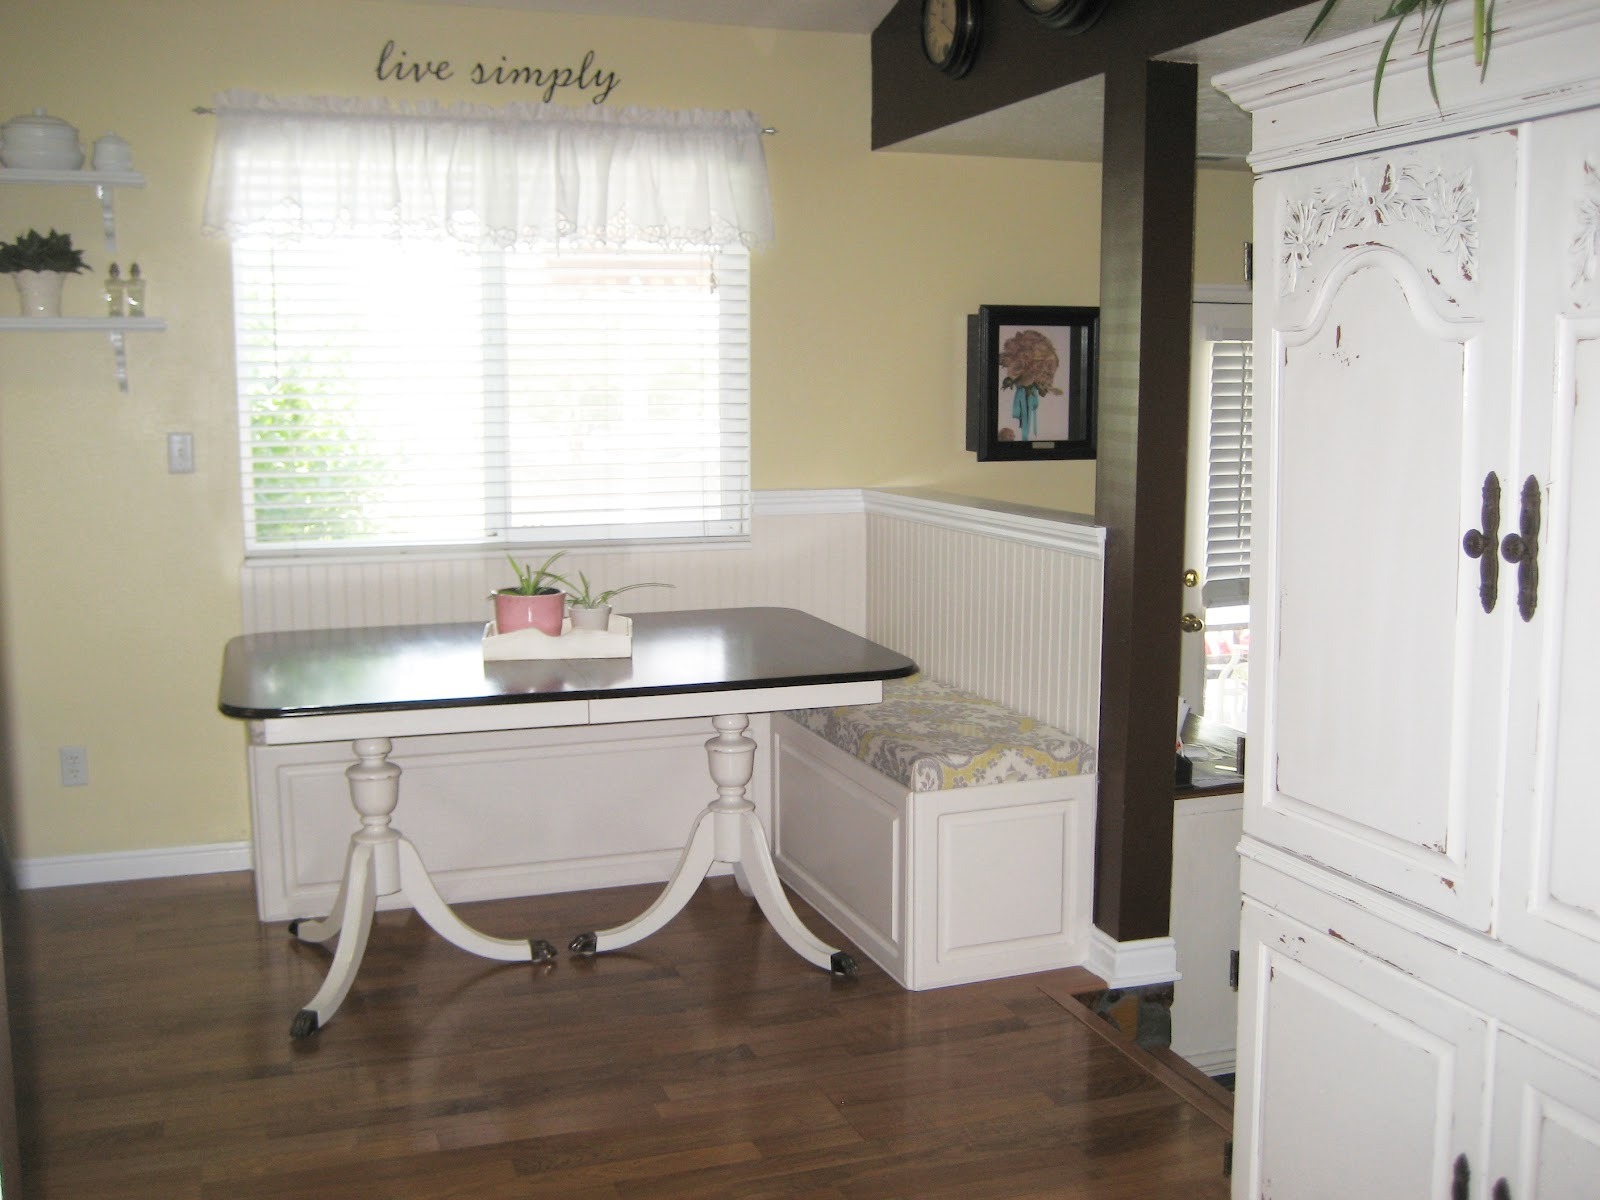 Paint Me Shabby Cushions for the Breakfast Nook